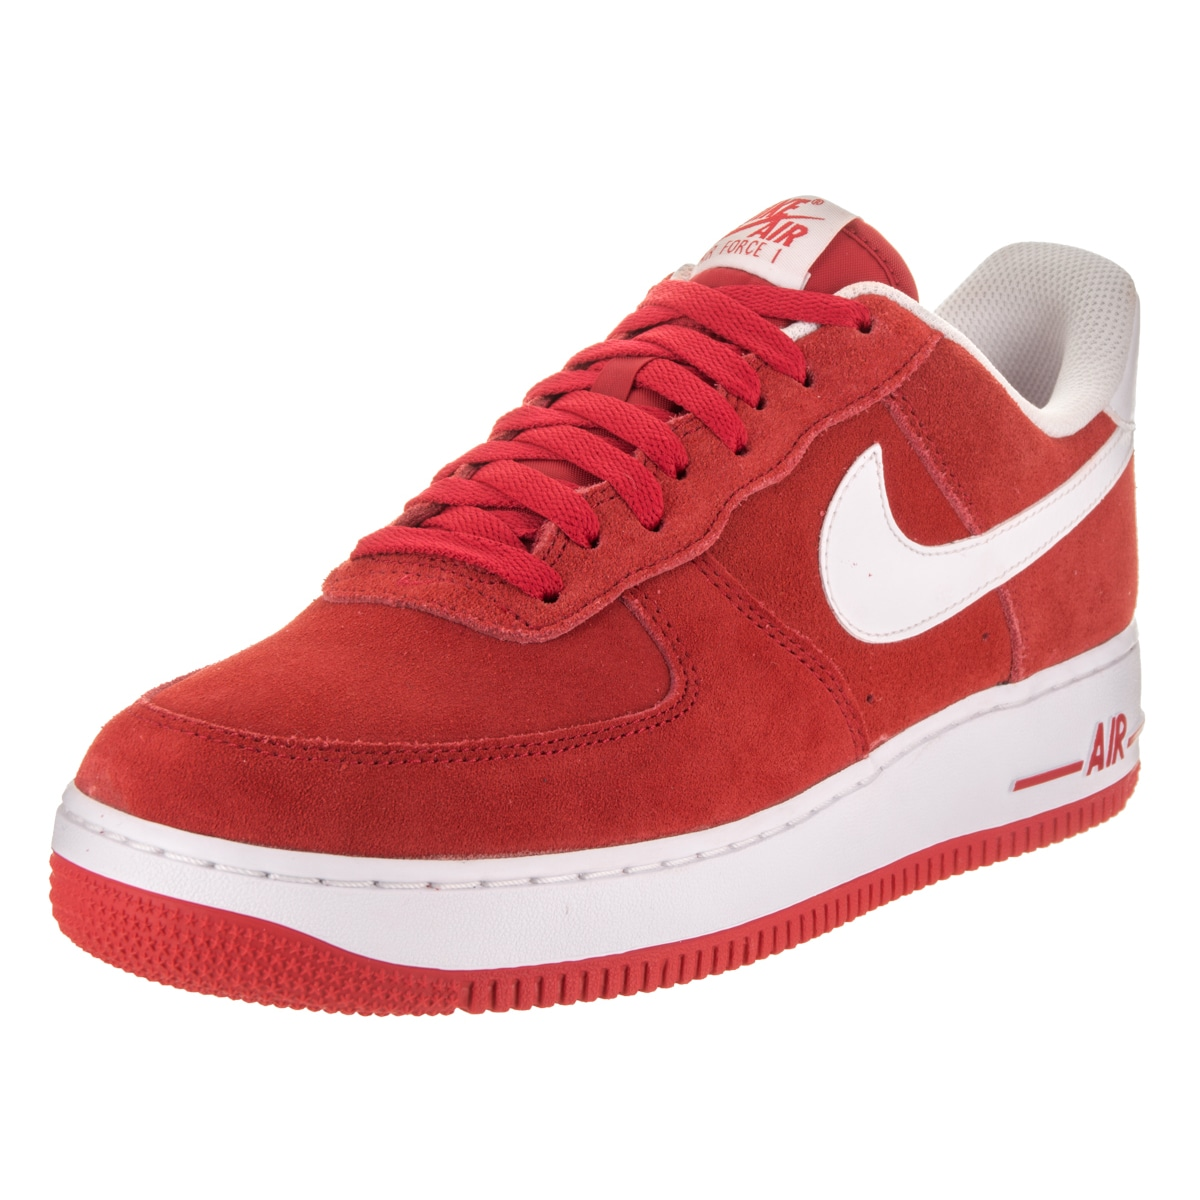 Nike Men's Air Force 1 '07 Basketball Shoes (12), Red